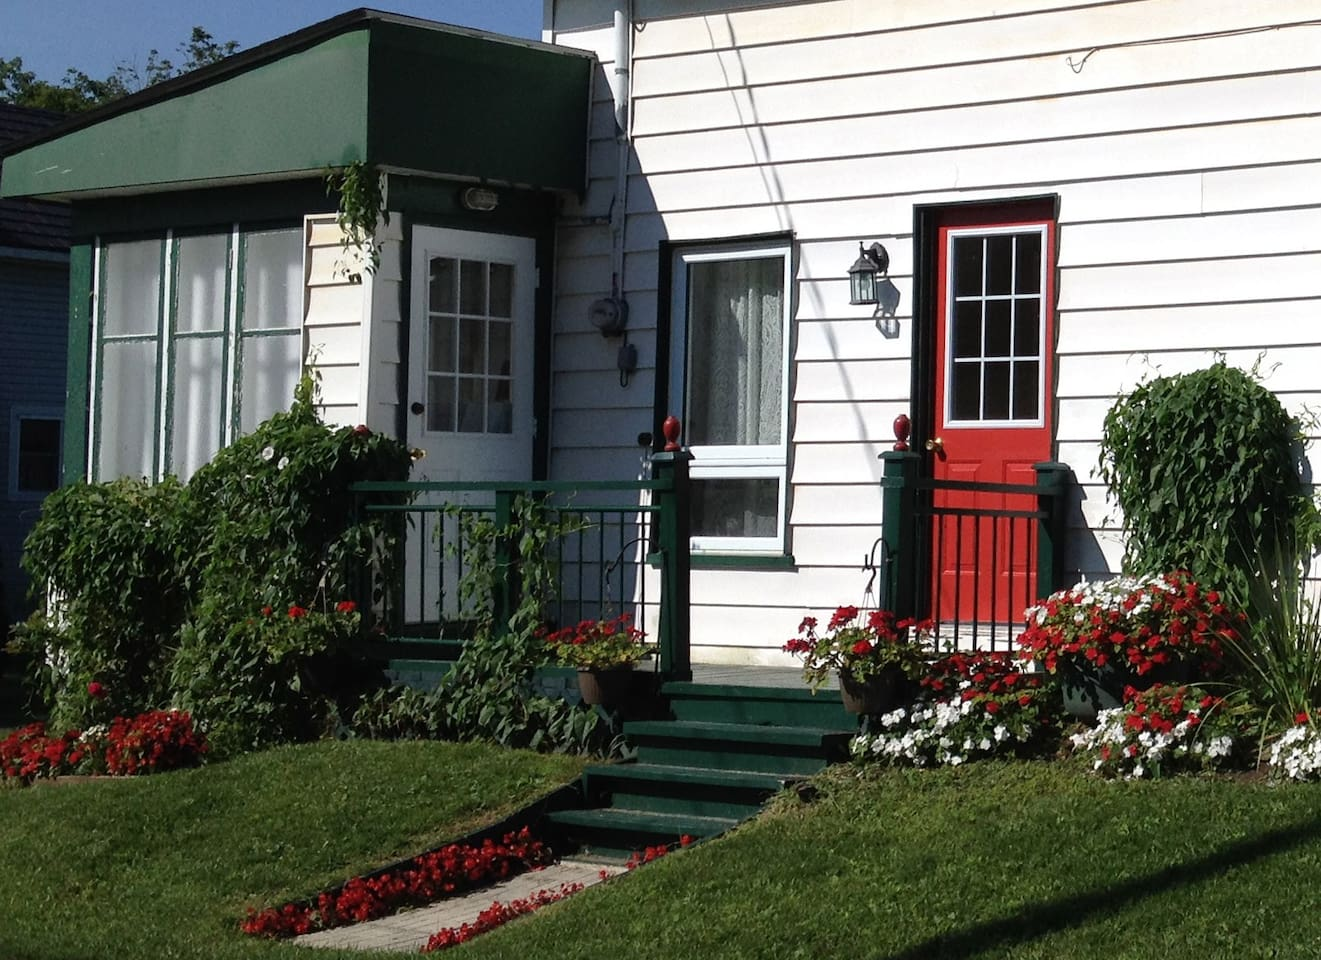 Our cozy century home is located in the heart of historic Merrickville steps from restaurants, shopping and attractions. The white door provides private keyless entry to your private room with en suite bath.